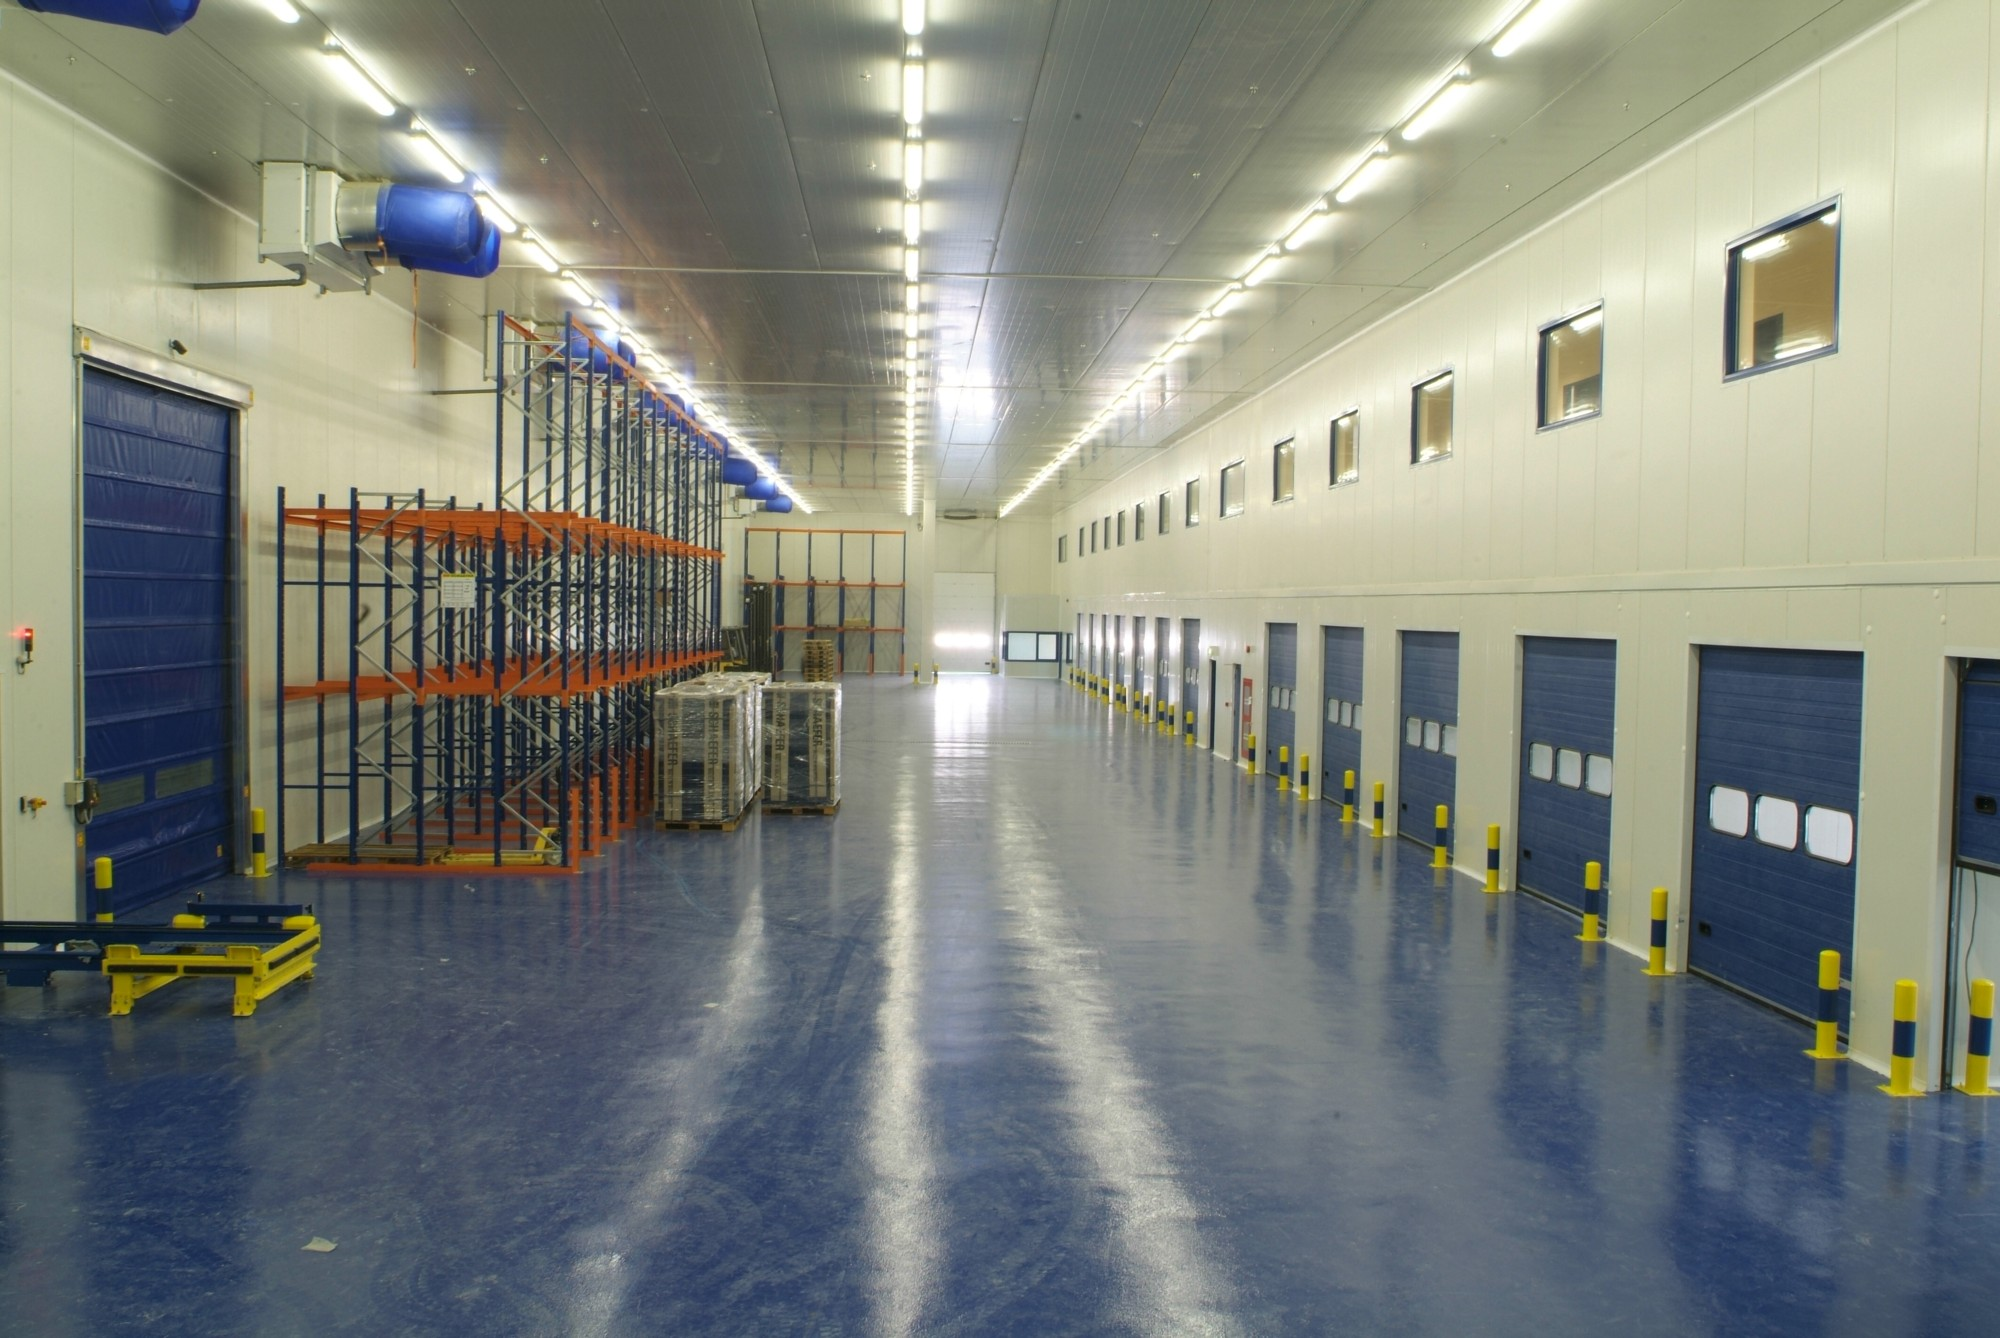 Our Services. Cold Storage Construction & Cold Storage Construction and Setup Work at Lower Cost